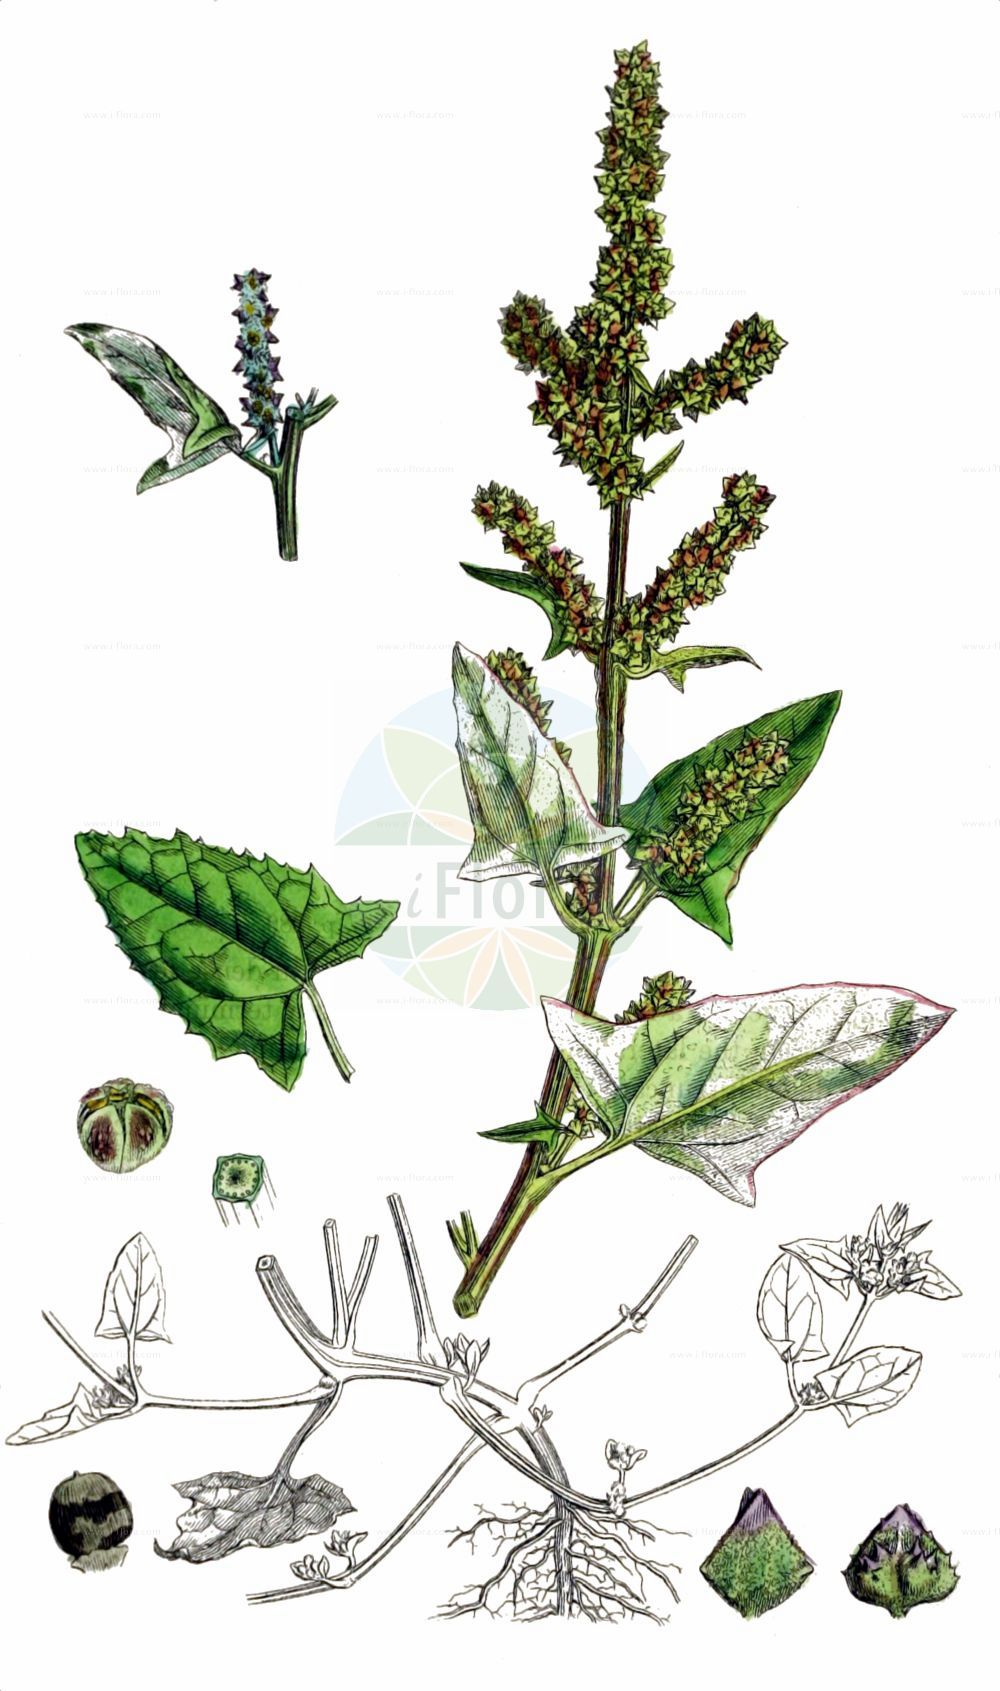 Historische Abbildung von Atriplex prostrata (Spiess-Melde - Spear-leaved Orache). Das Bild zeigt Blatt, Bluete, Frucht und Same. ---- Historical Drawing of Atriplex prostrata (Spiess-Melde - Spear-leaved Orache).The image is showing leaf, flower, fruit and seed.(Atriplex prostrata,Spiess-Melde,Spear-leaved Orache,Atriplex deltoidea,Atriplex latifolia,Atriplex oppositifolia,Atriplex platysepala,Atriplex polonica,Atriplex prostrata,Atriplex triangularis,Spiess-Melde,Spiessblaettrige Melde,Spear-leaved Orache,Hastate Orache,Halberd-leaf Orache,Thin-leaved Orache,Mountain Spinach,Triangle Orache,Wild Orache,Atriplex,Melde,Saltbush,Amaranthaceae,Fuchsschwanzgewaechse,Pigweed family,Blatt,Bluete,Frucht,Same,leaf,flower,fruit,seed,Sowerby (1790-1813))